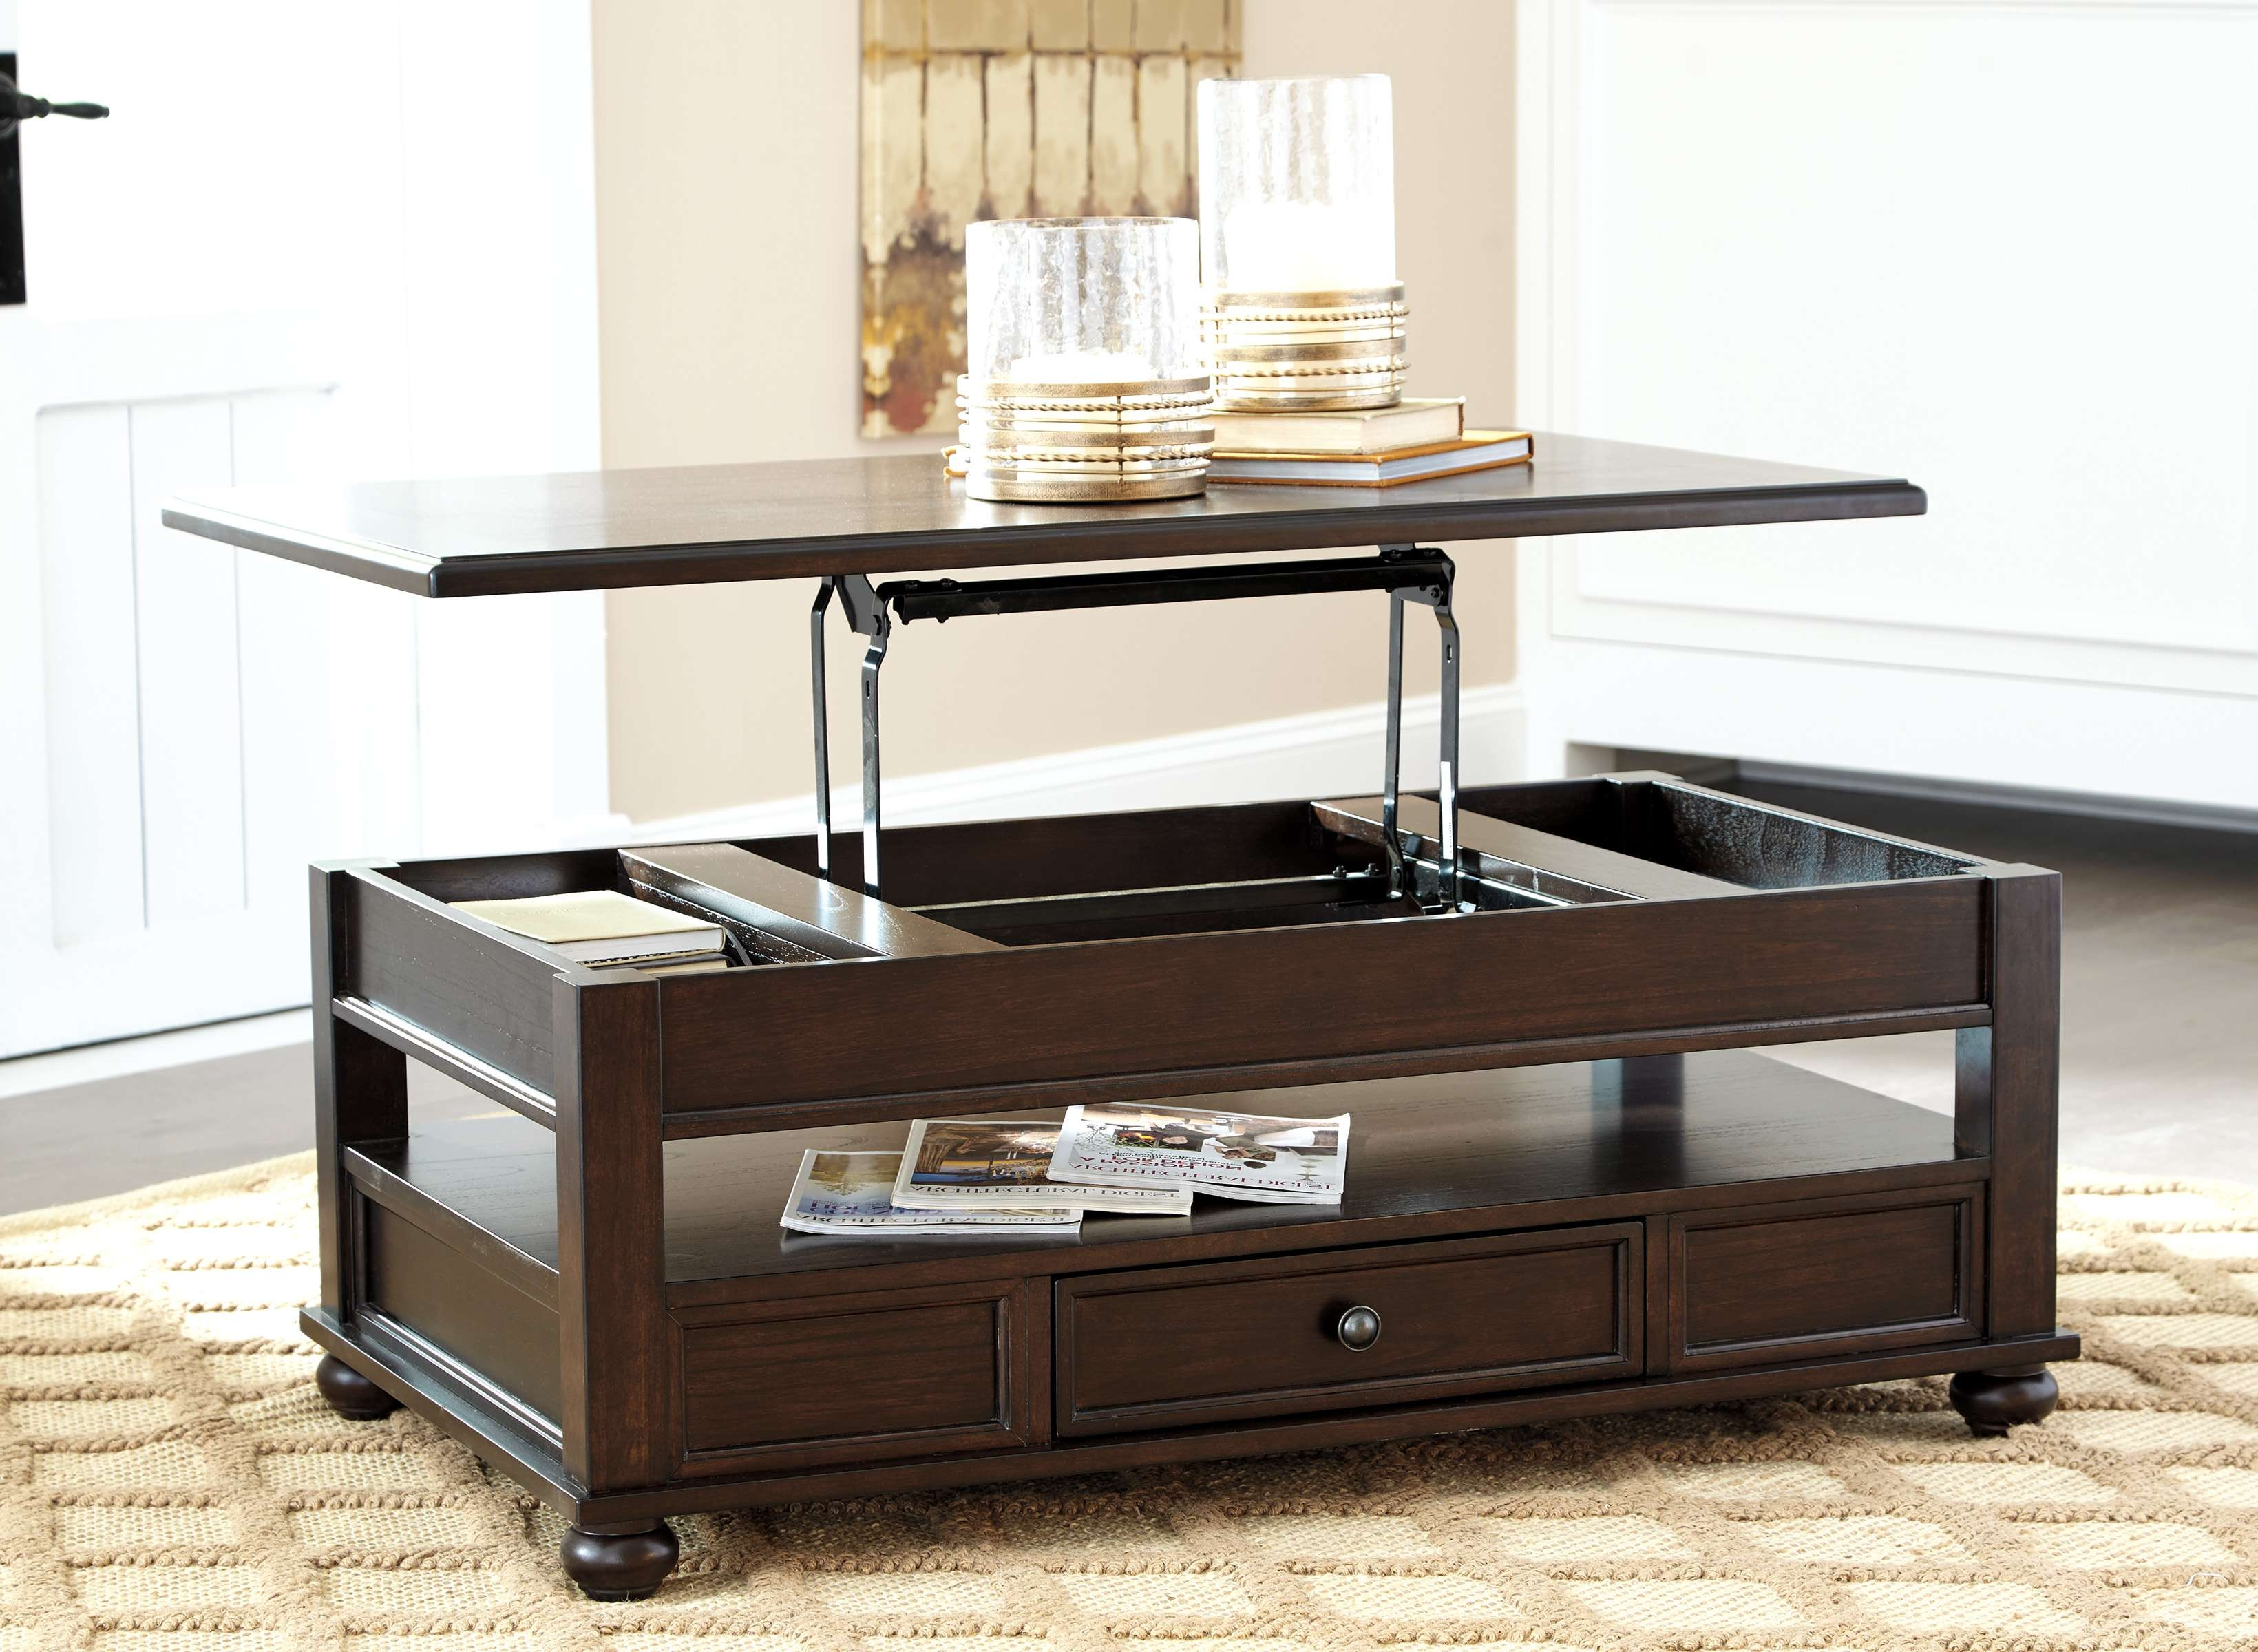 Coffee Tables : Simple Table With Stools And Storage Cube Coffee For Famous Dark Brown Coffee Tables (View 7 of 20)